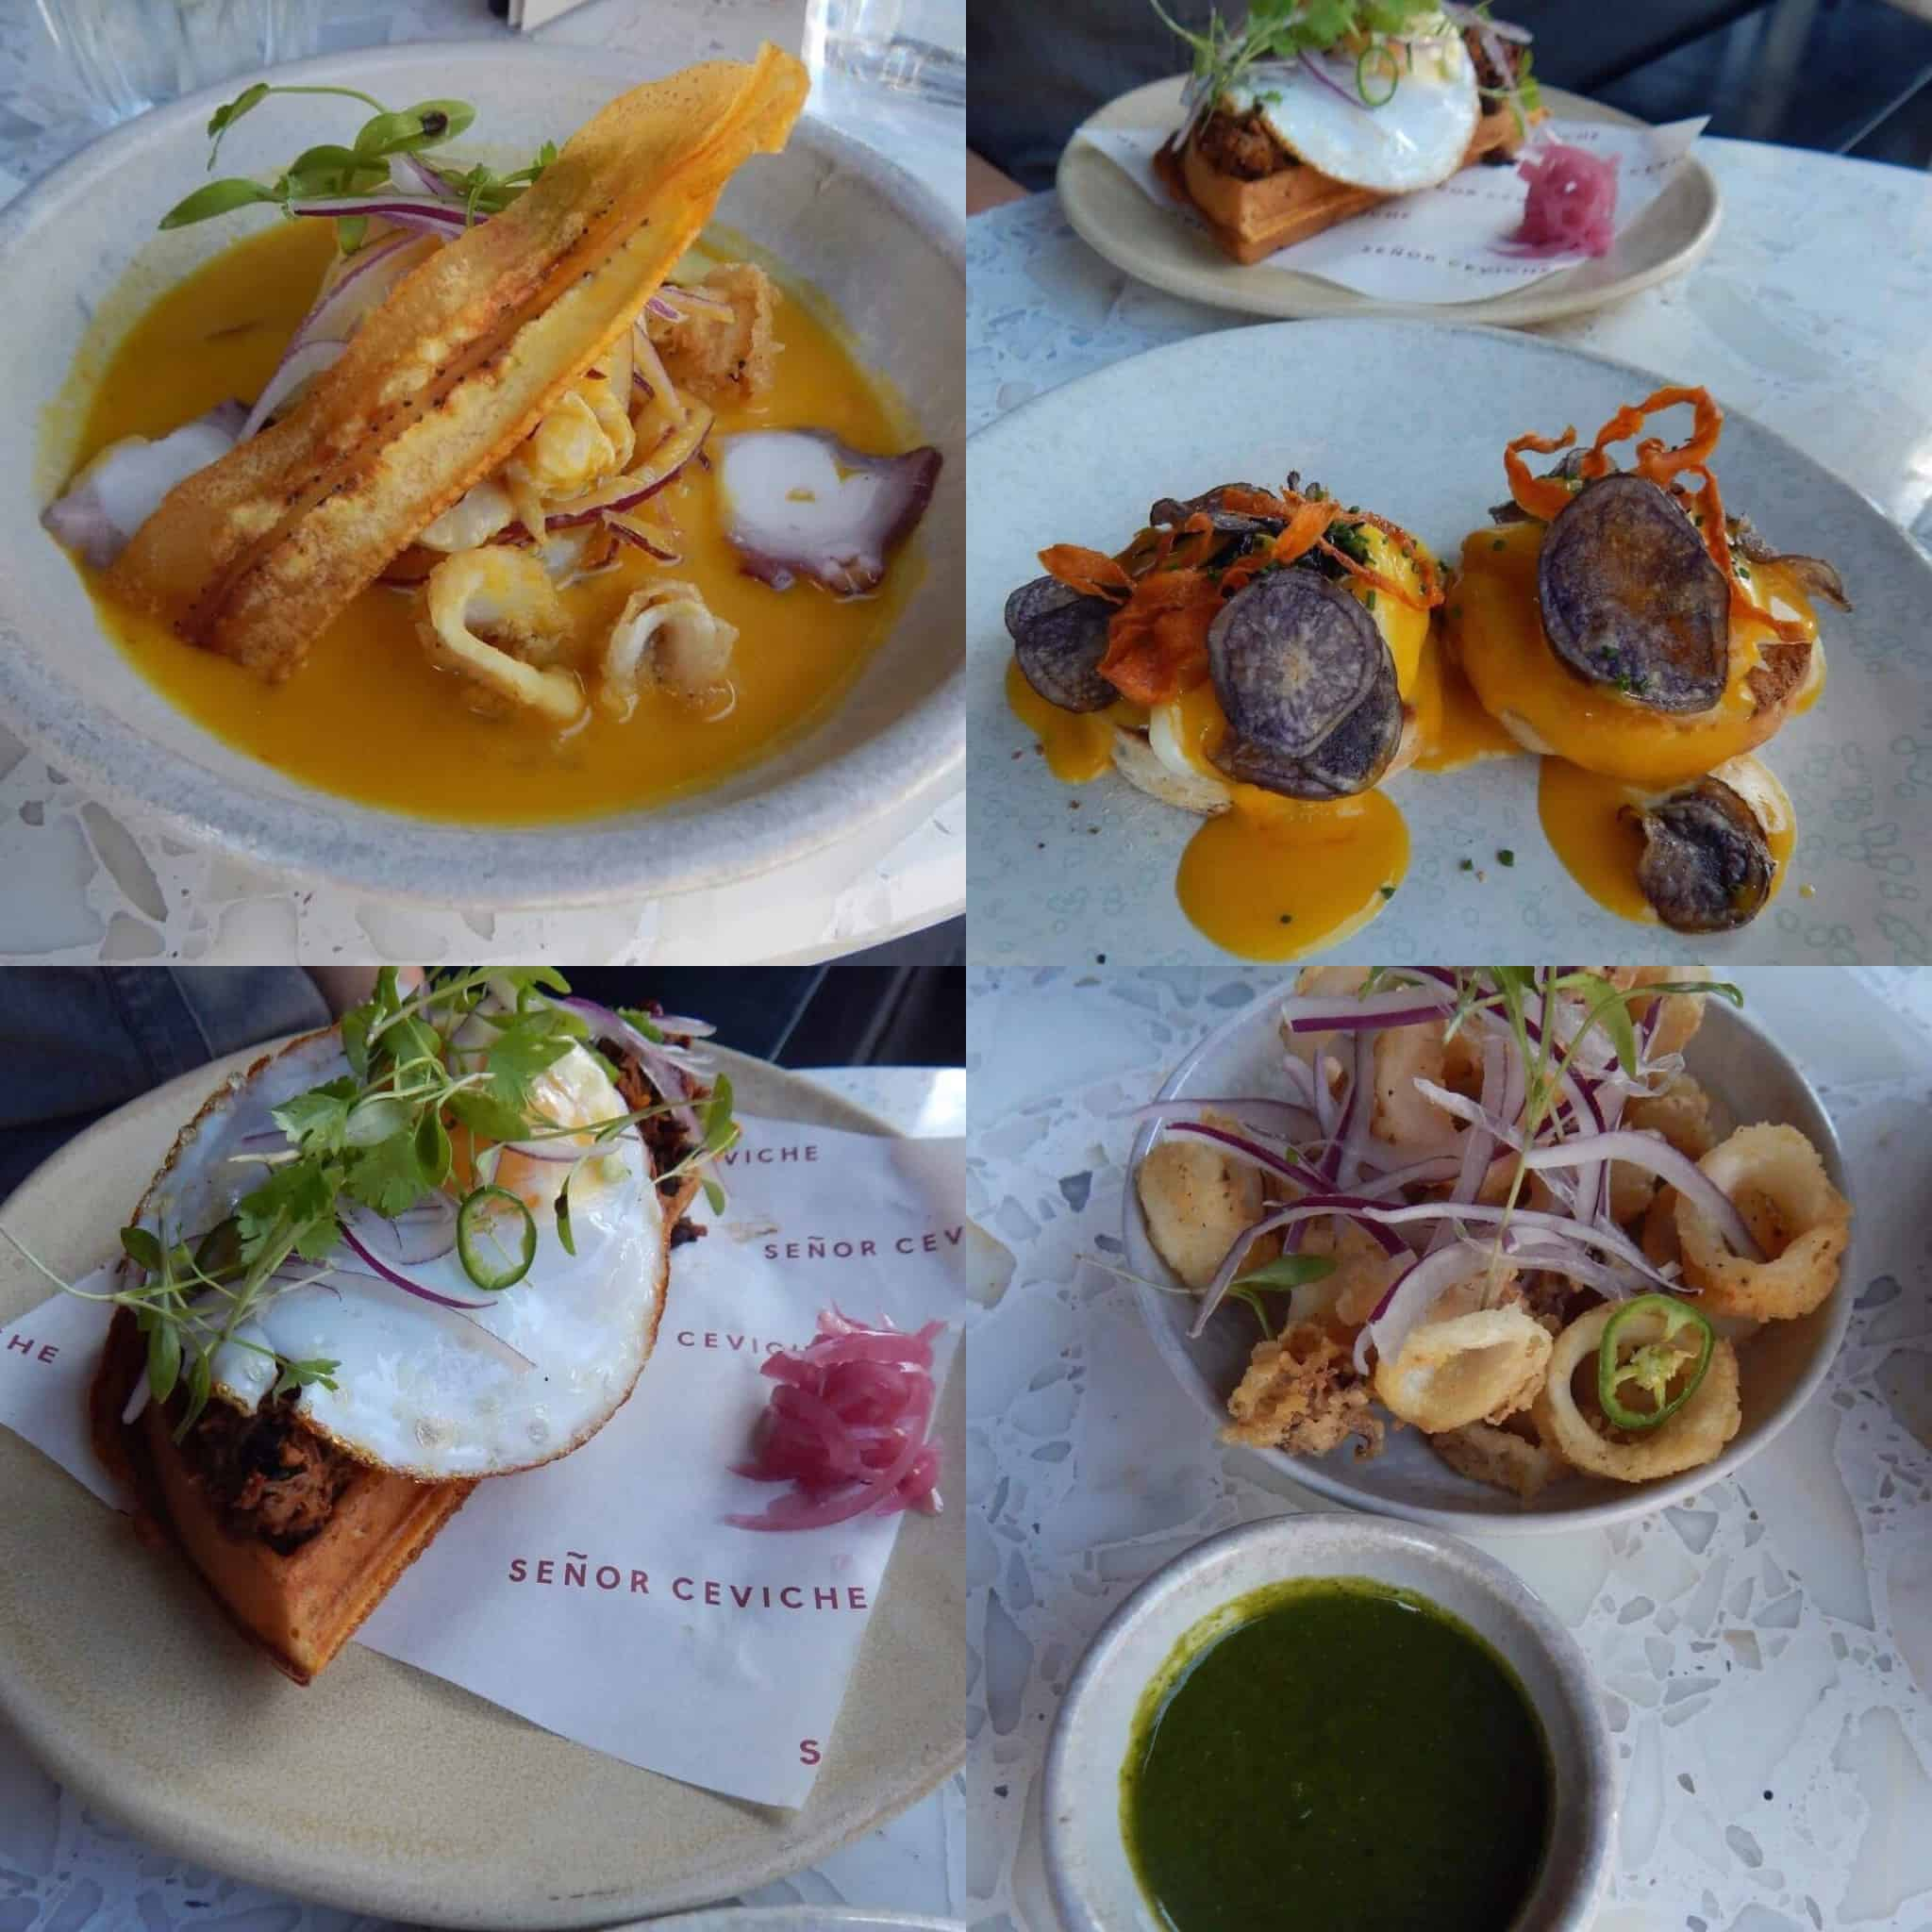 Peruvian cuisine in London